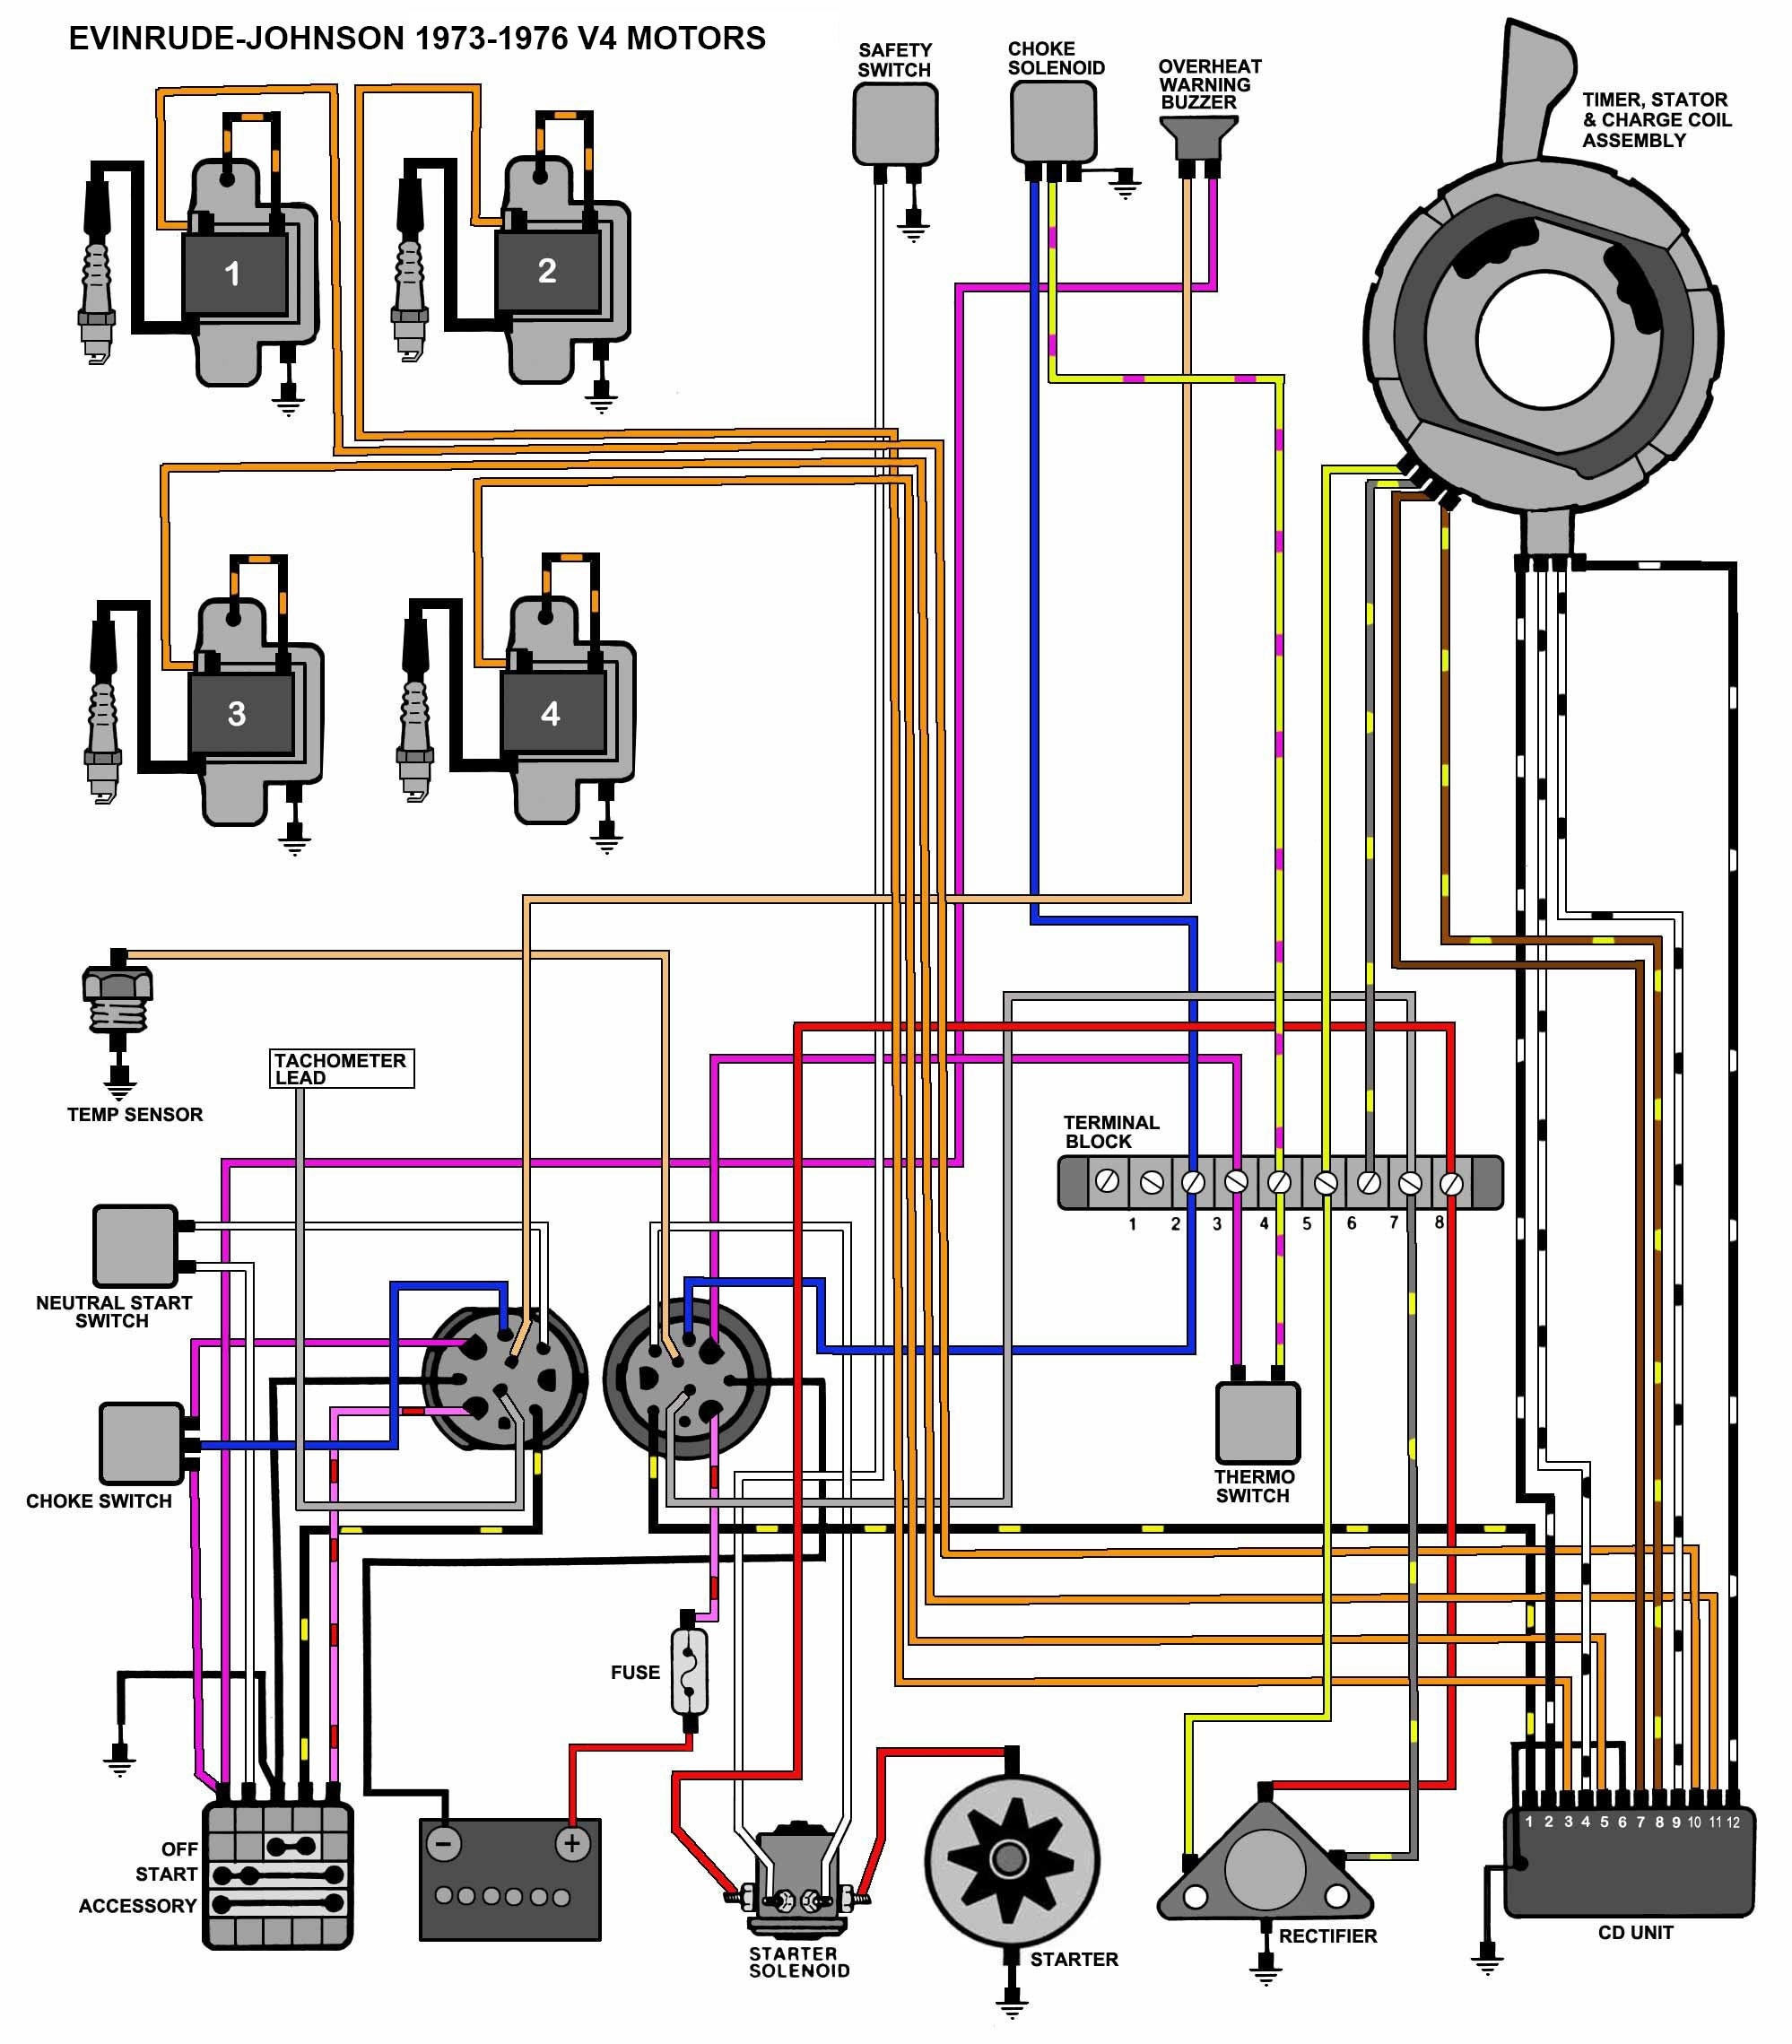 mercury outboard ignition switch wiring diagram mercury outboard ignition switch wiring diagram